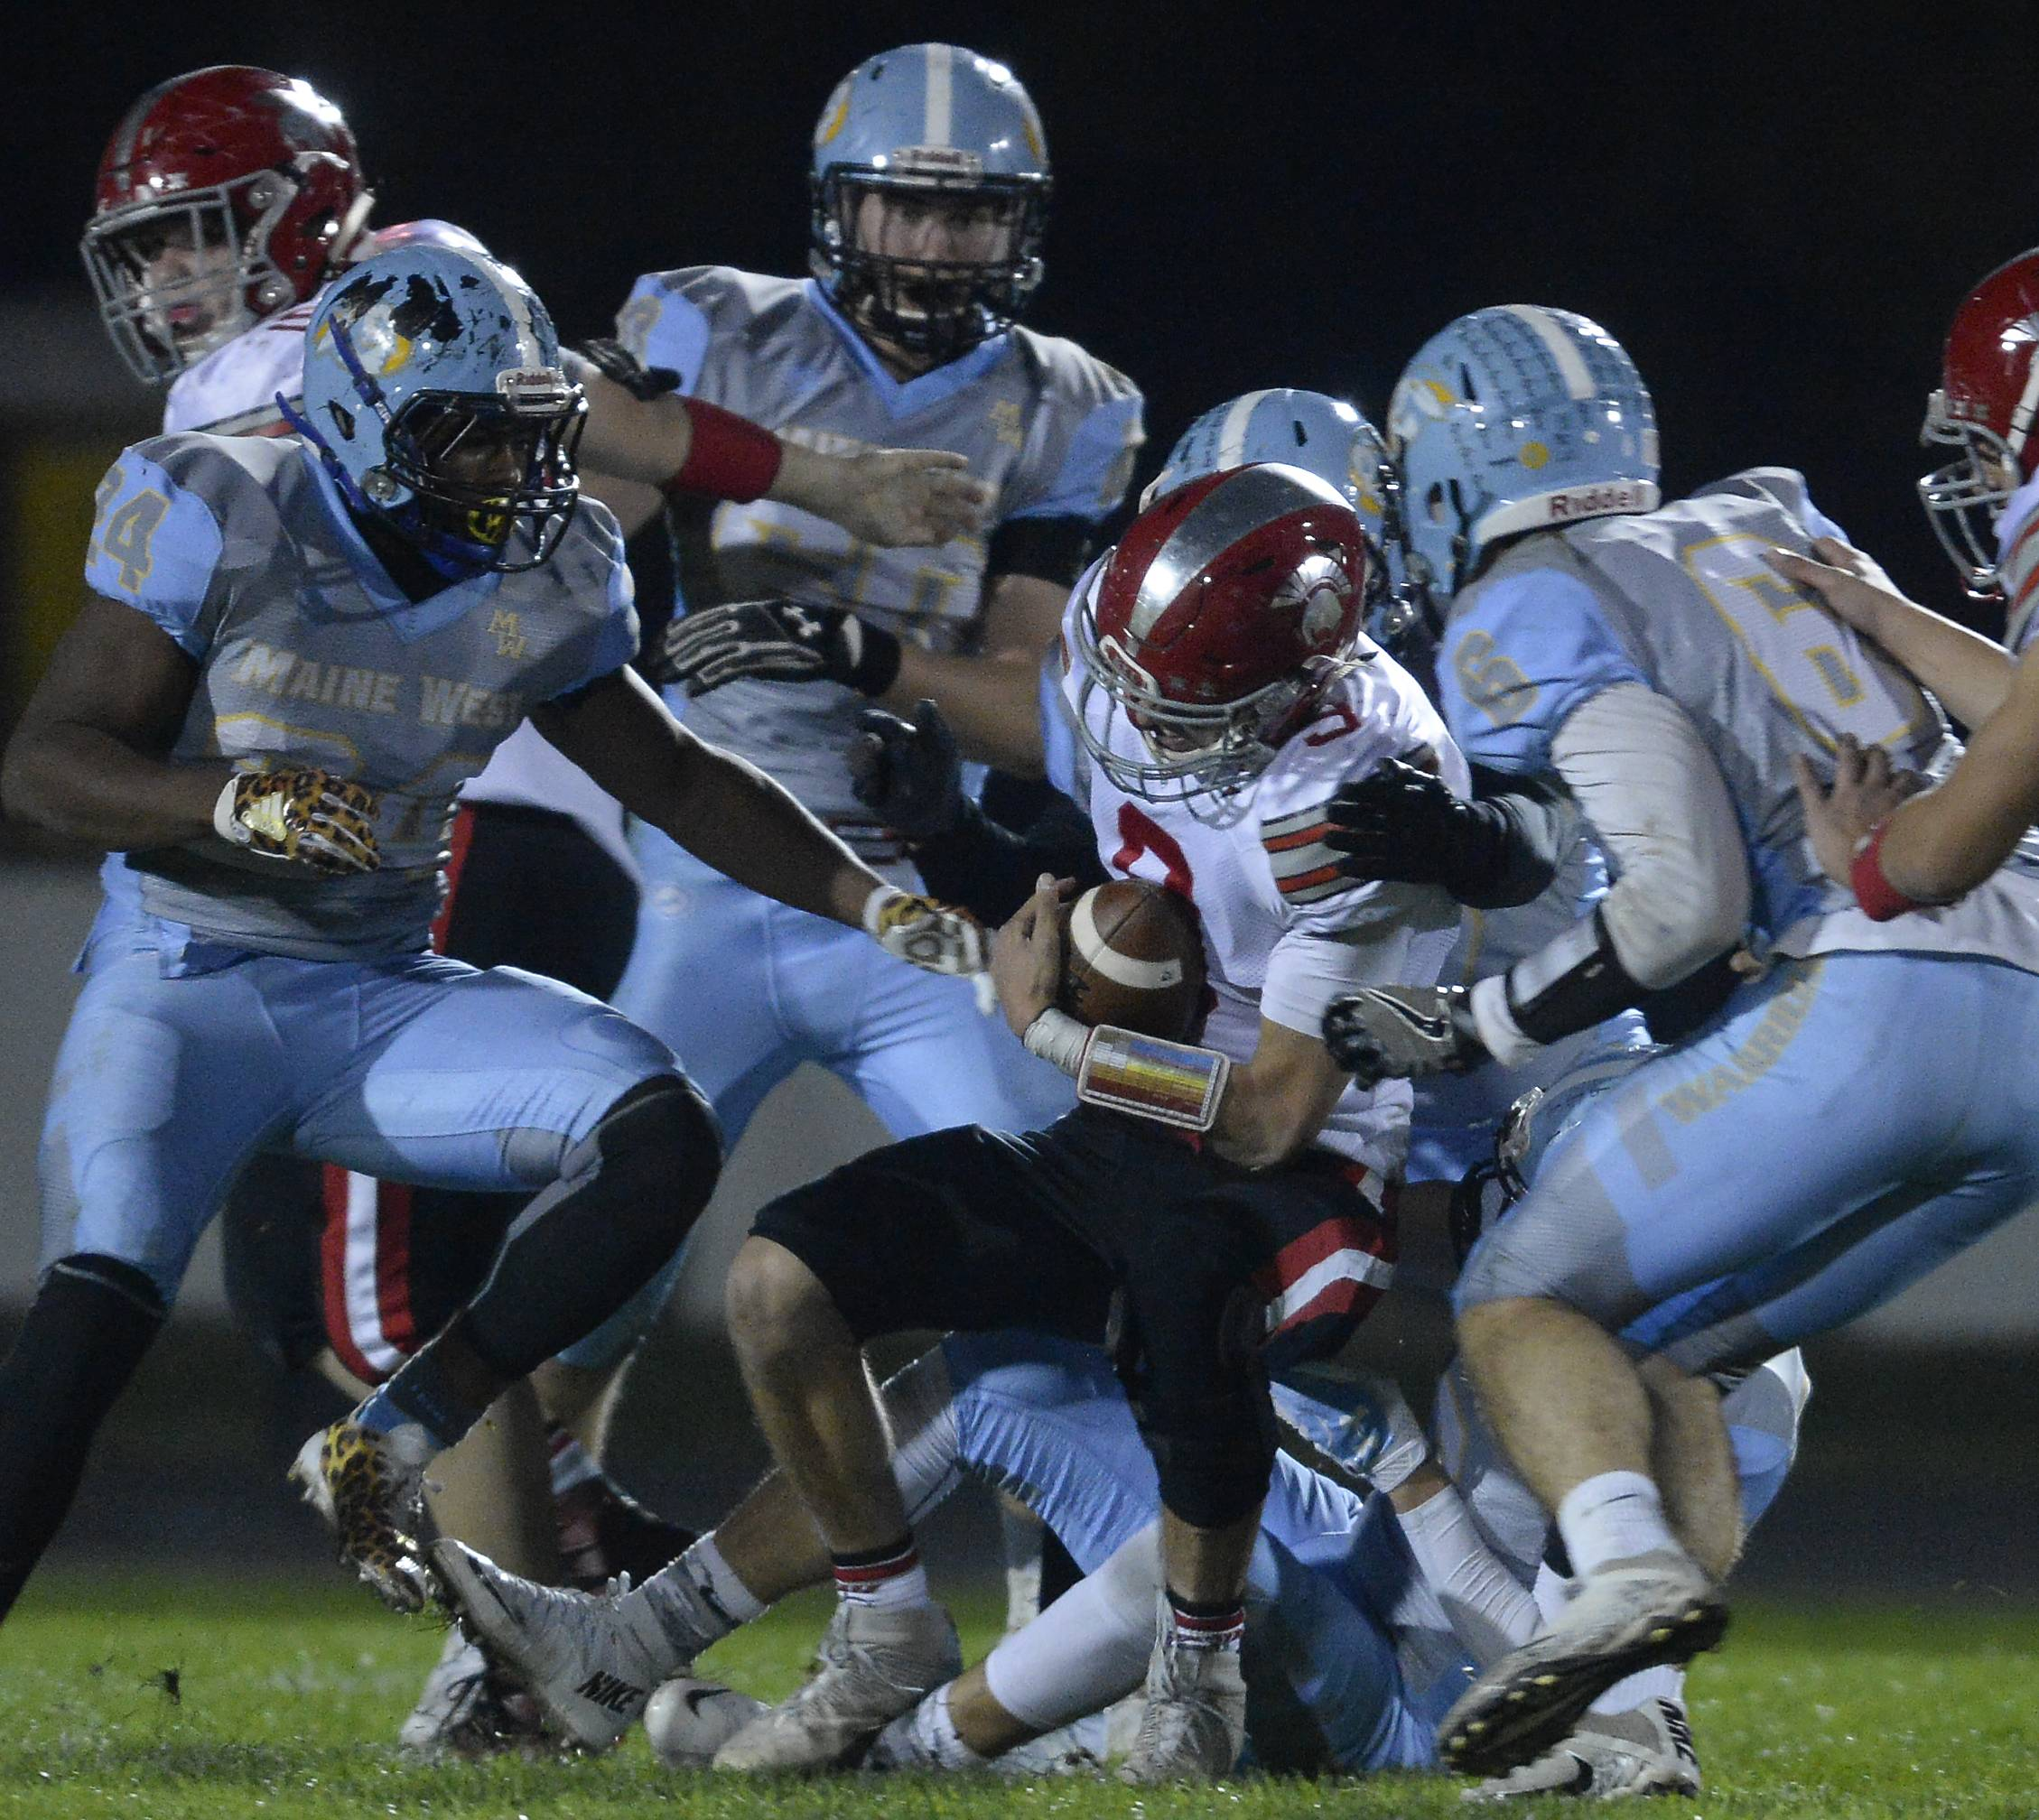 Maine West's defense brings down Deerfield quarterback Jonah Silverglade in the first half Friday at Maine West.